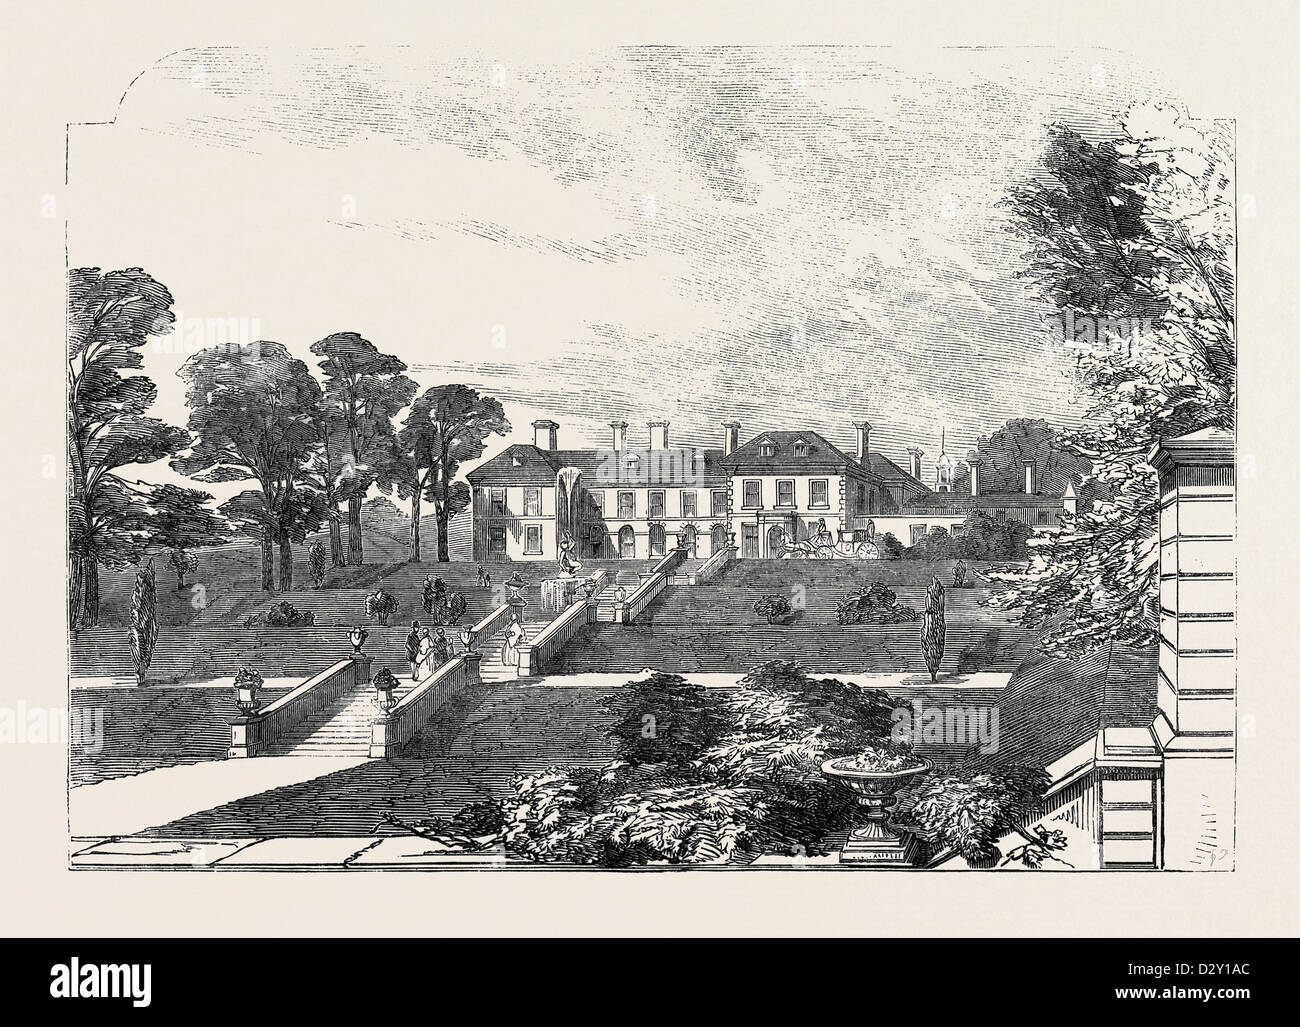 GLOSSOP HALL, DERBYSHIRE, 1852 Stock Photo